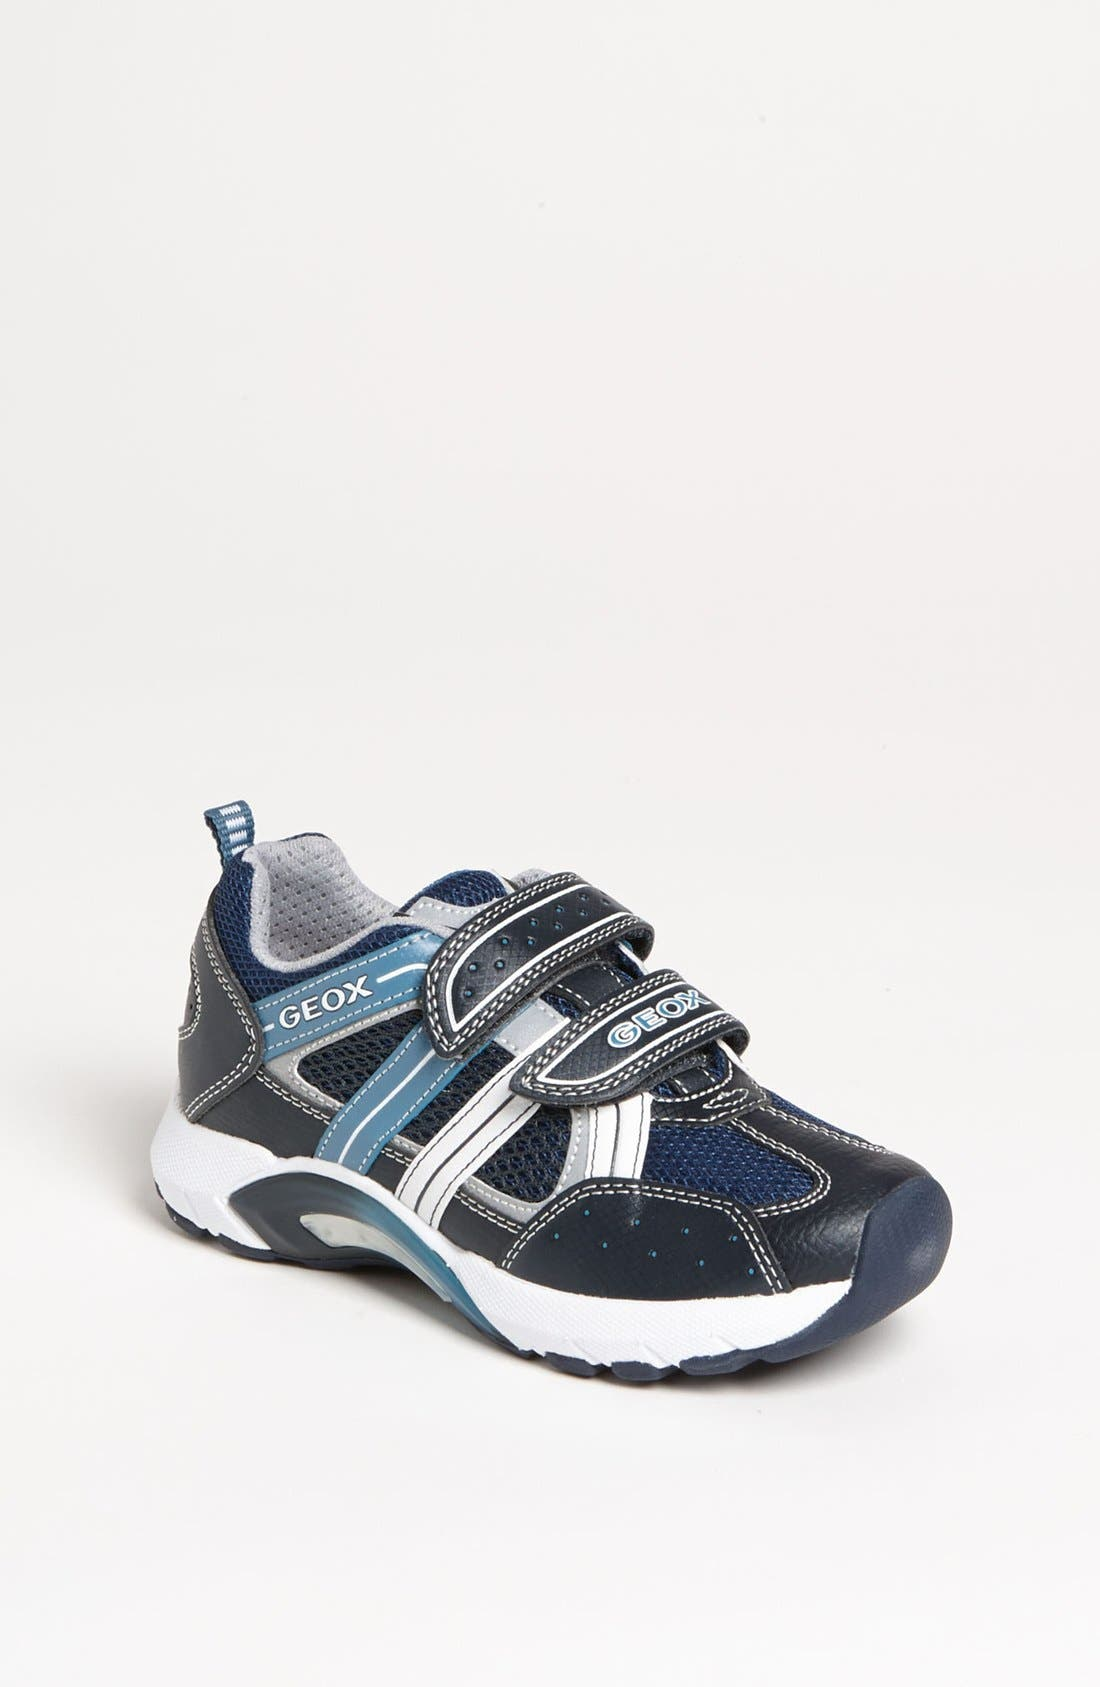 Alternate Image 1 Selected - Geox 'Stark' Sneaker (Walker, Toddler, Little Kid & Big Kid)